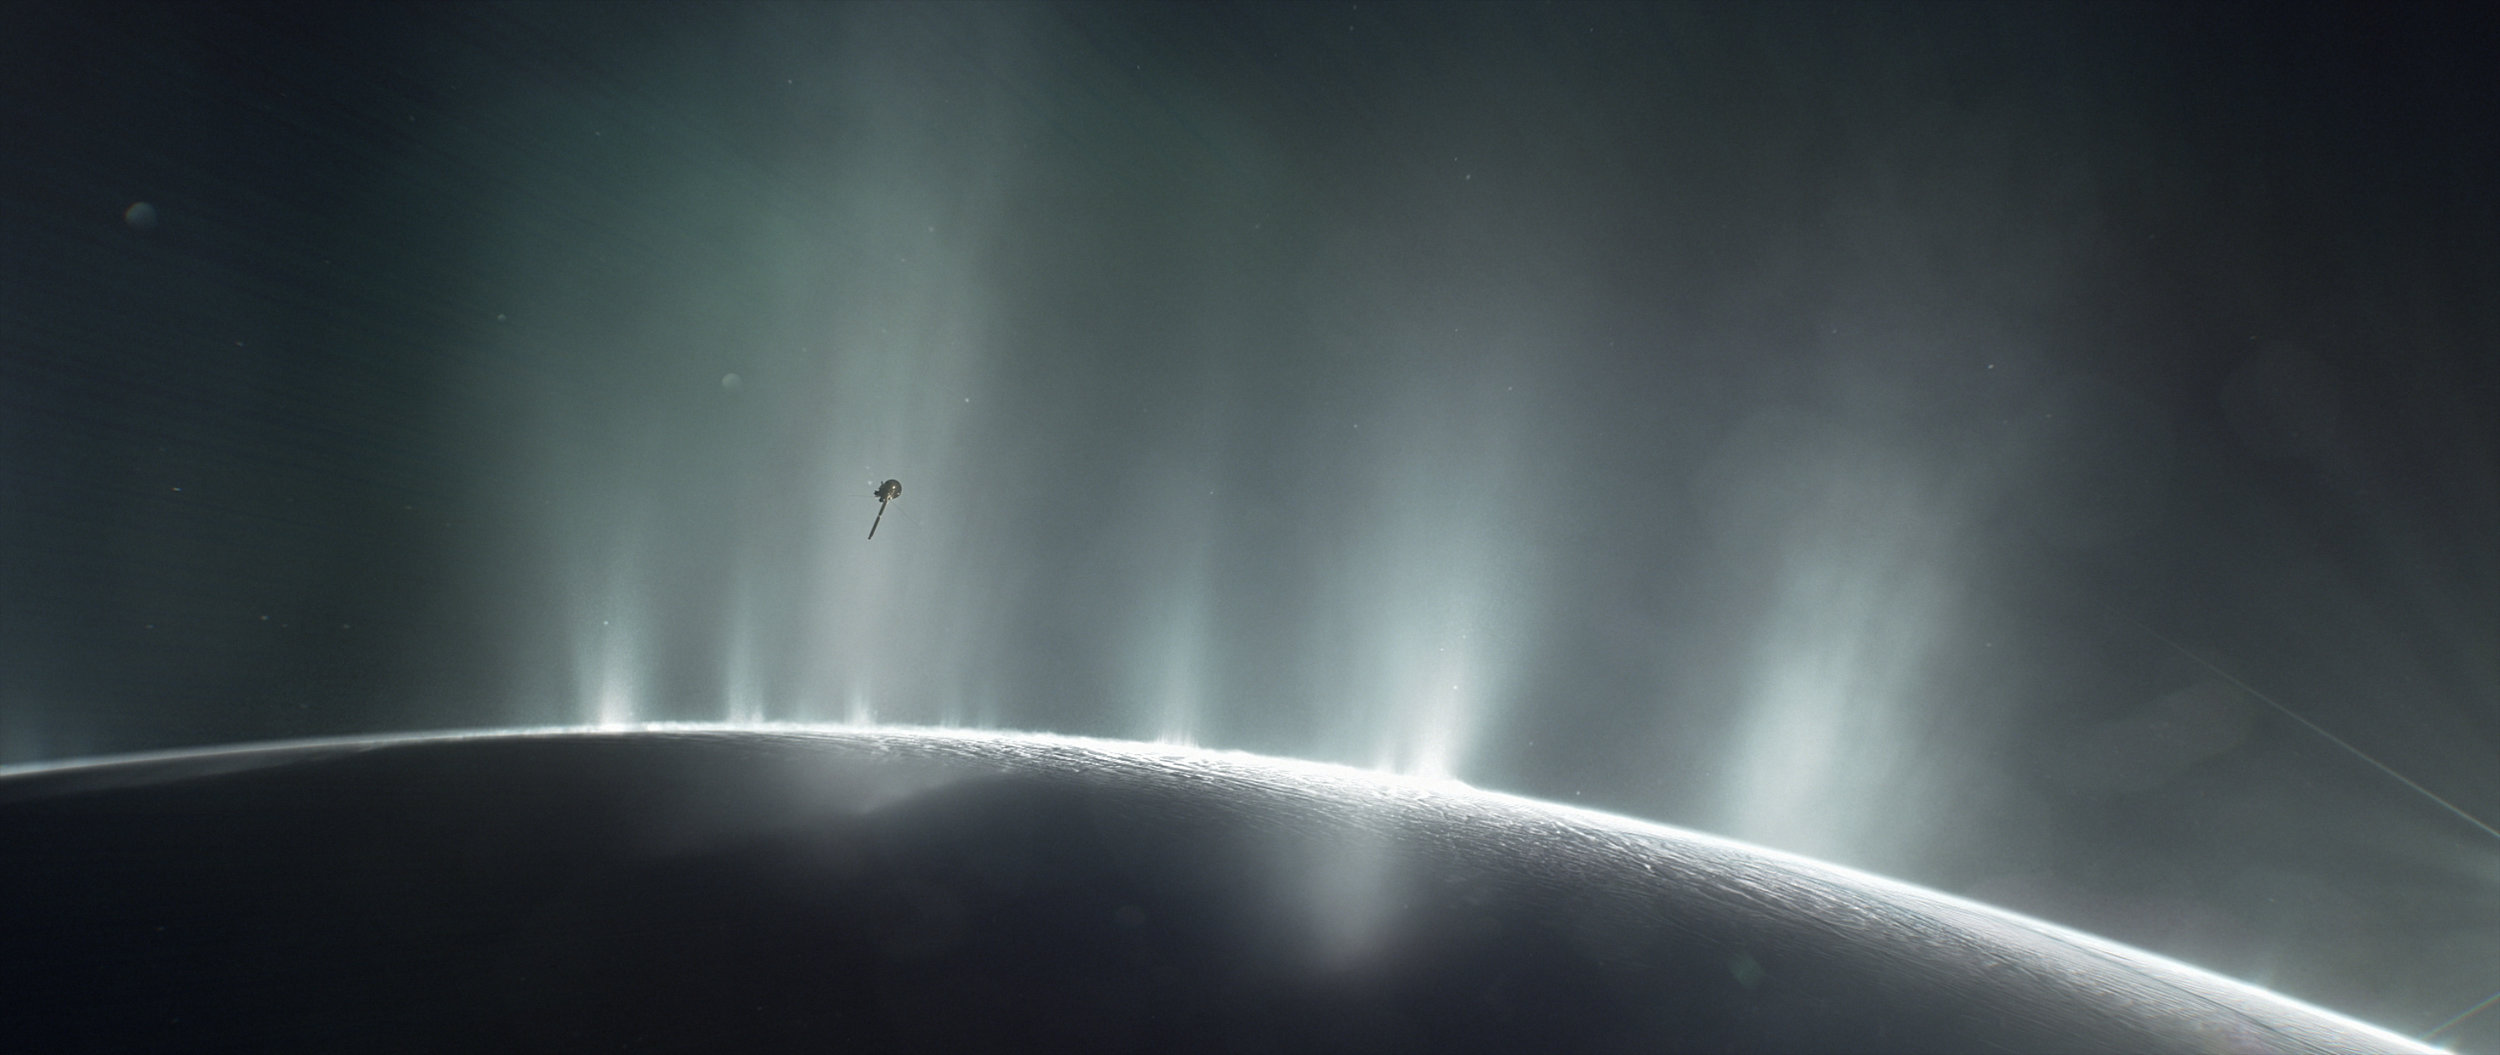 This illustration shows Cassini diving through the Enceladus plume in 2015. New ocean world discoveries from Cassini and Hubble will help inform future exploration and the broader search for life beyond Earth. - Image Credits: NASA/JPL-Caltech